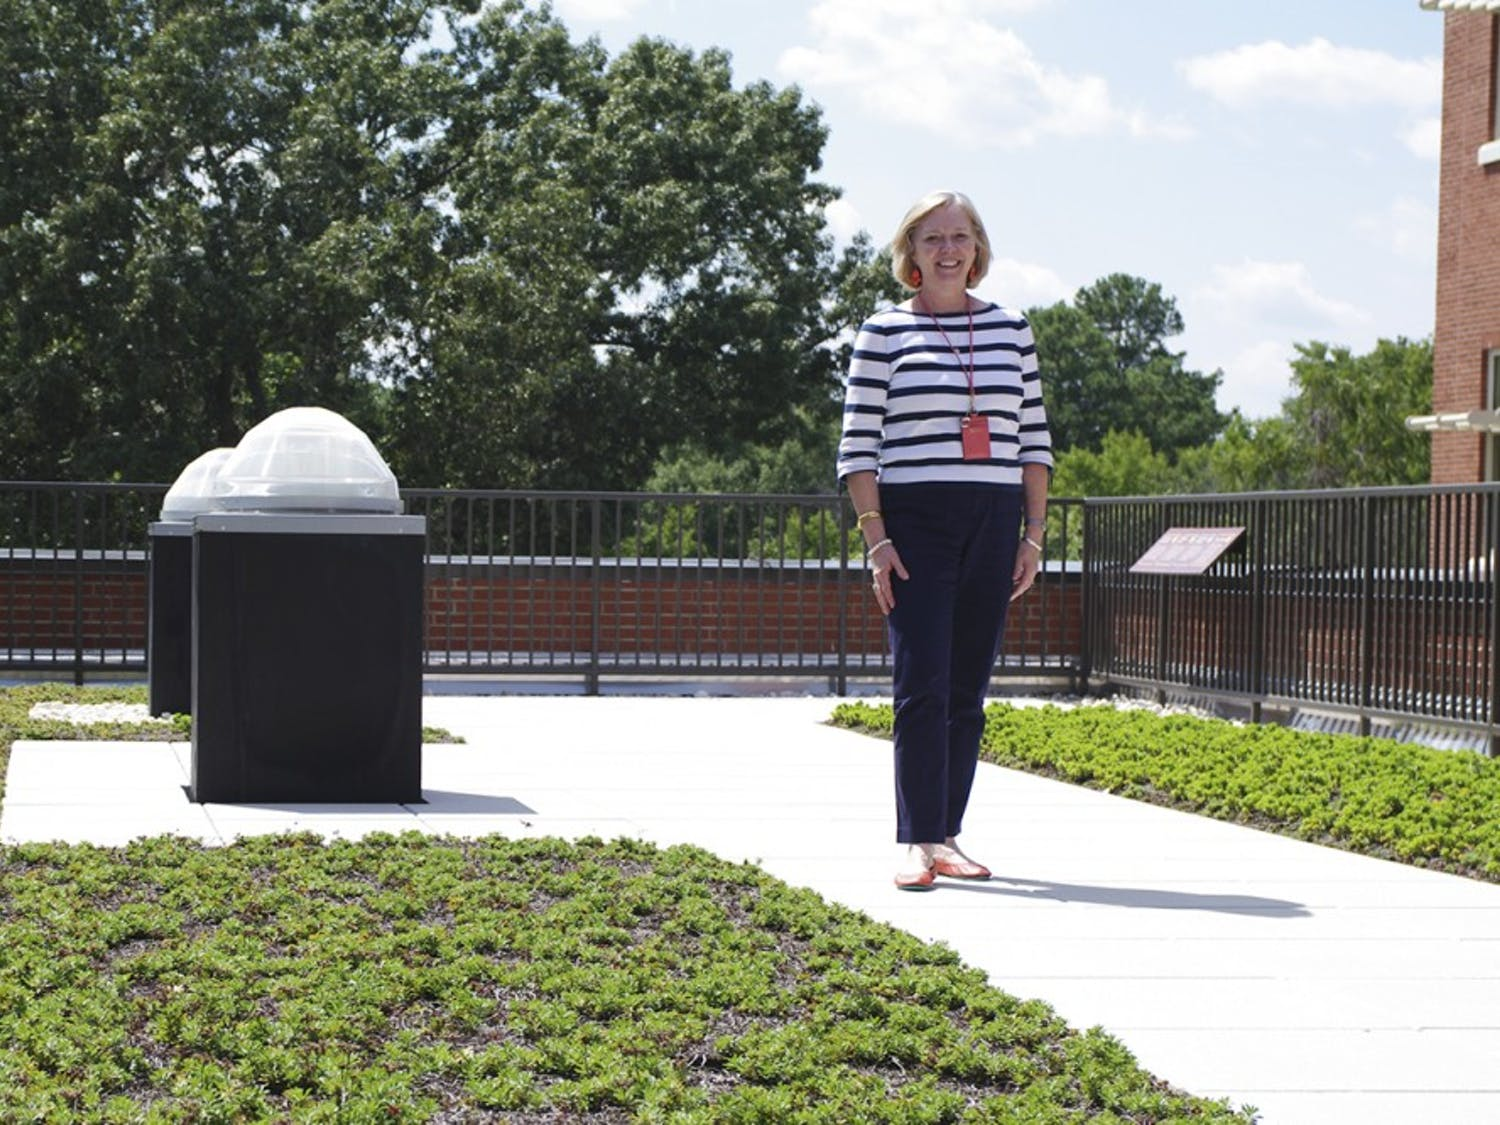 The principal of Northside Elementary,  Cheryl Carnahan, stood on the school's roof garden on August 14th, 2014. The garden contains several energy efficient features, including solar tubes and a rainwater cistern.